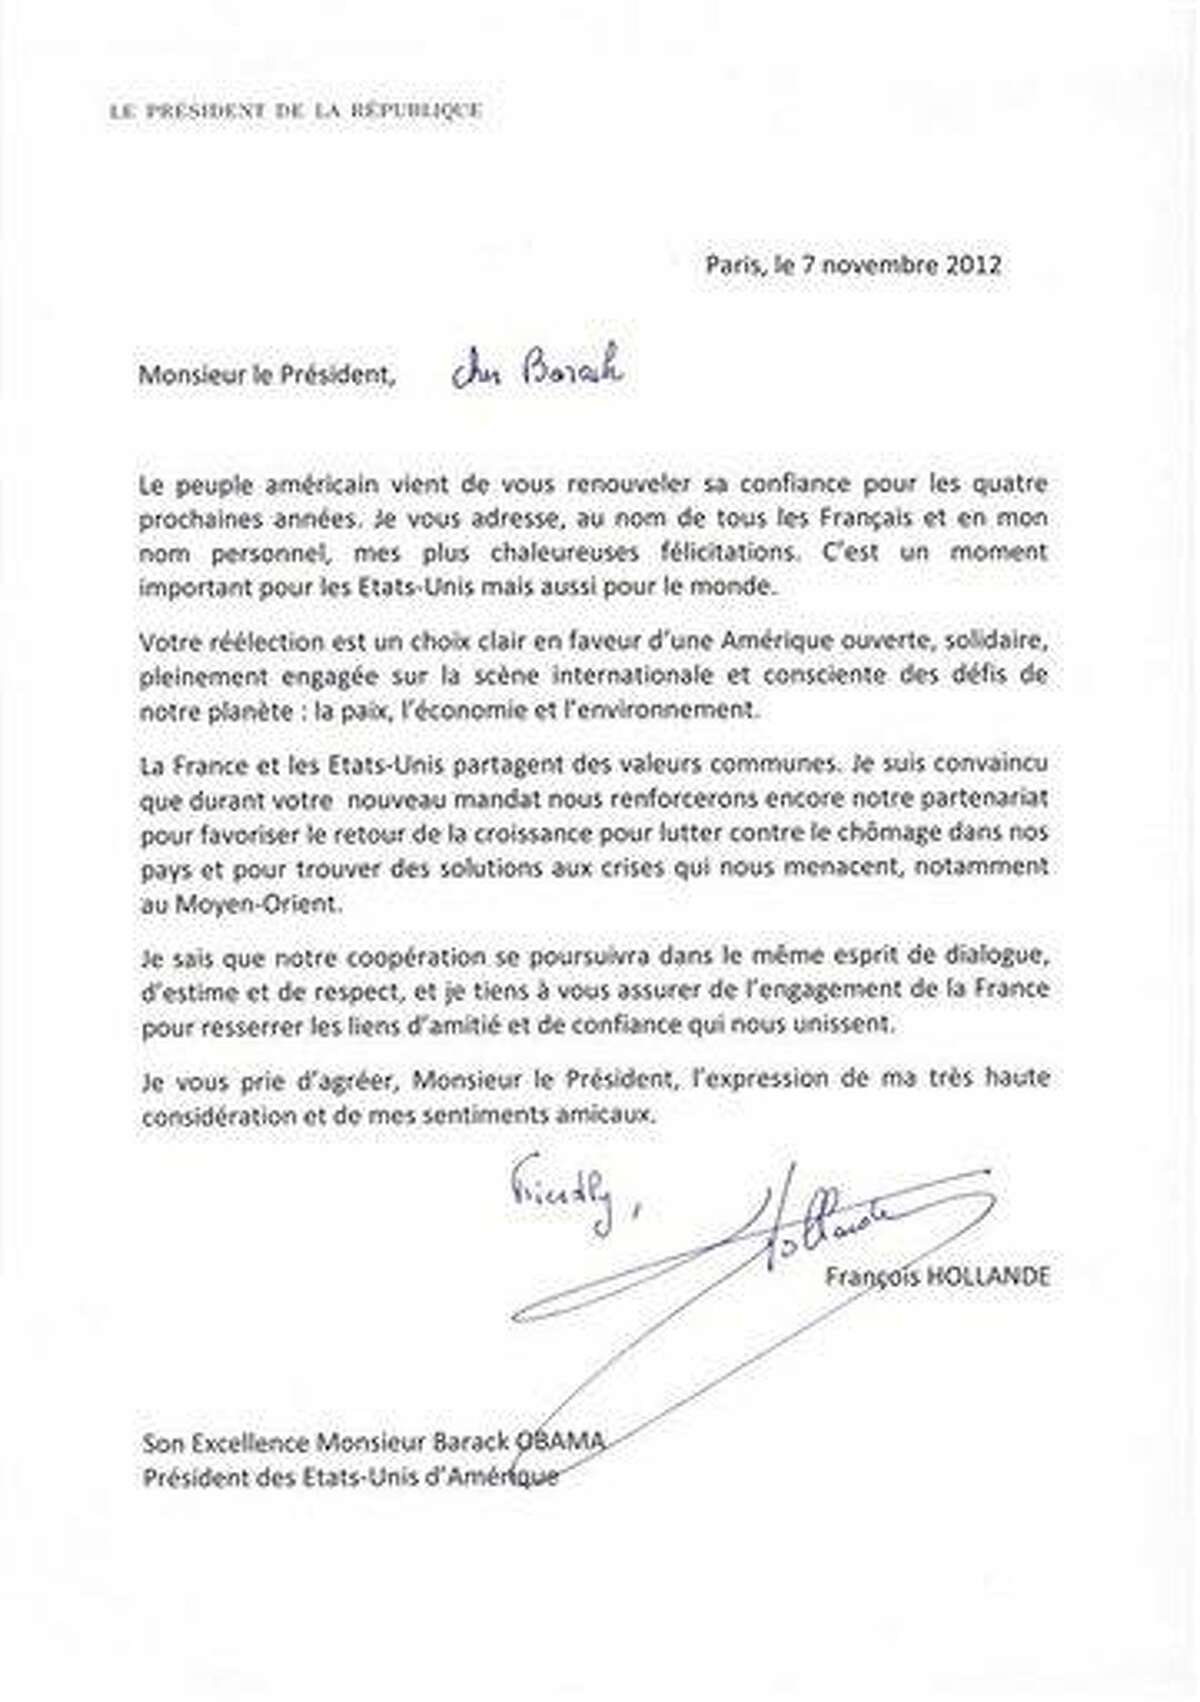 In this photo provided by the French Presidential Palace on Wednesday, Nov. 7, 2012, a letter written by French President Francois Hollande addressed to U.S. President Barack Obama congratulating him on his reelection bears a handwritten salutation reading,